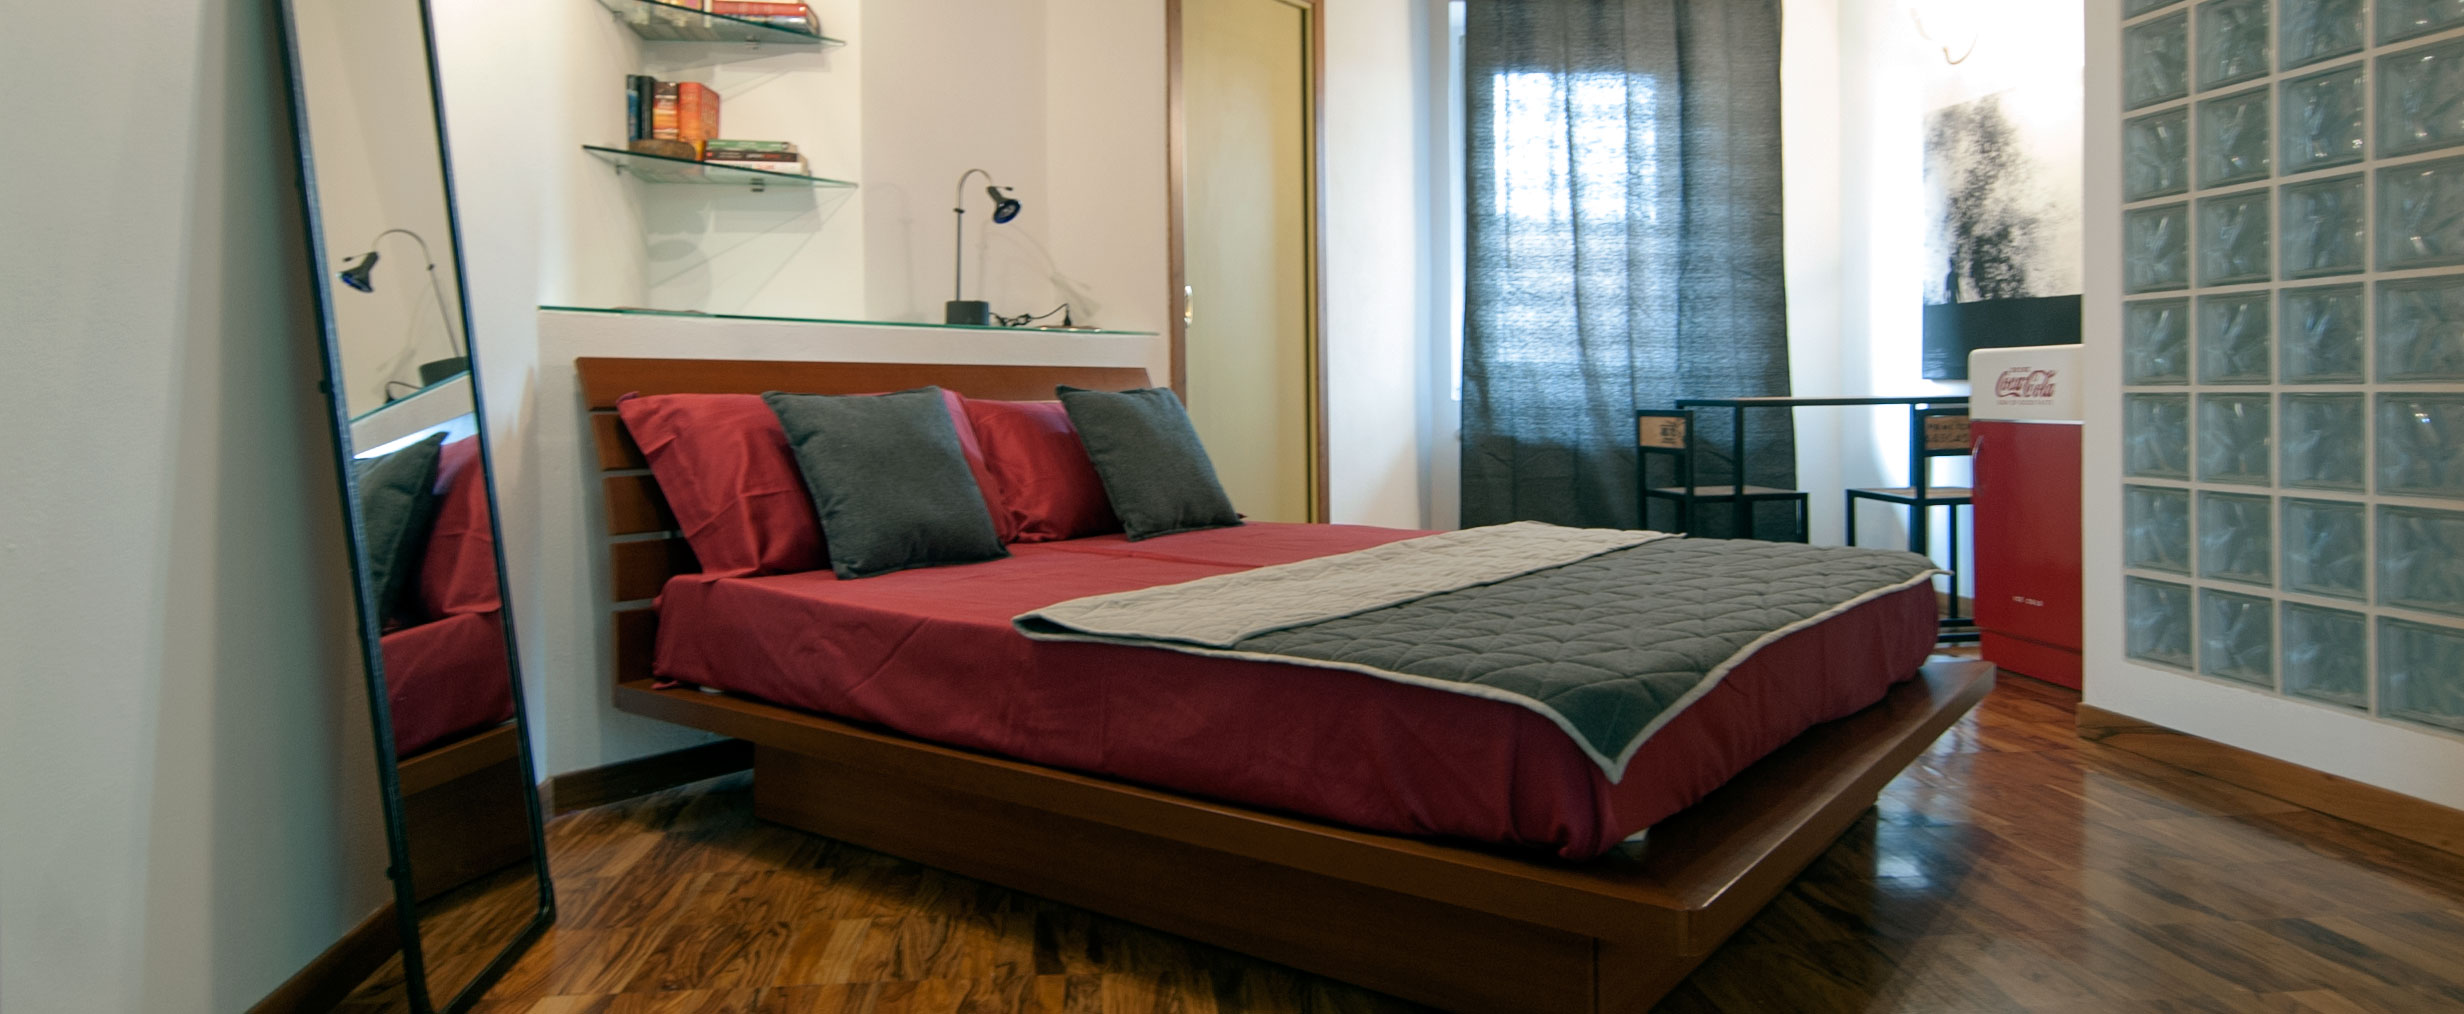 Bed and Breakfast Milano Pero Rho fiera